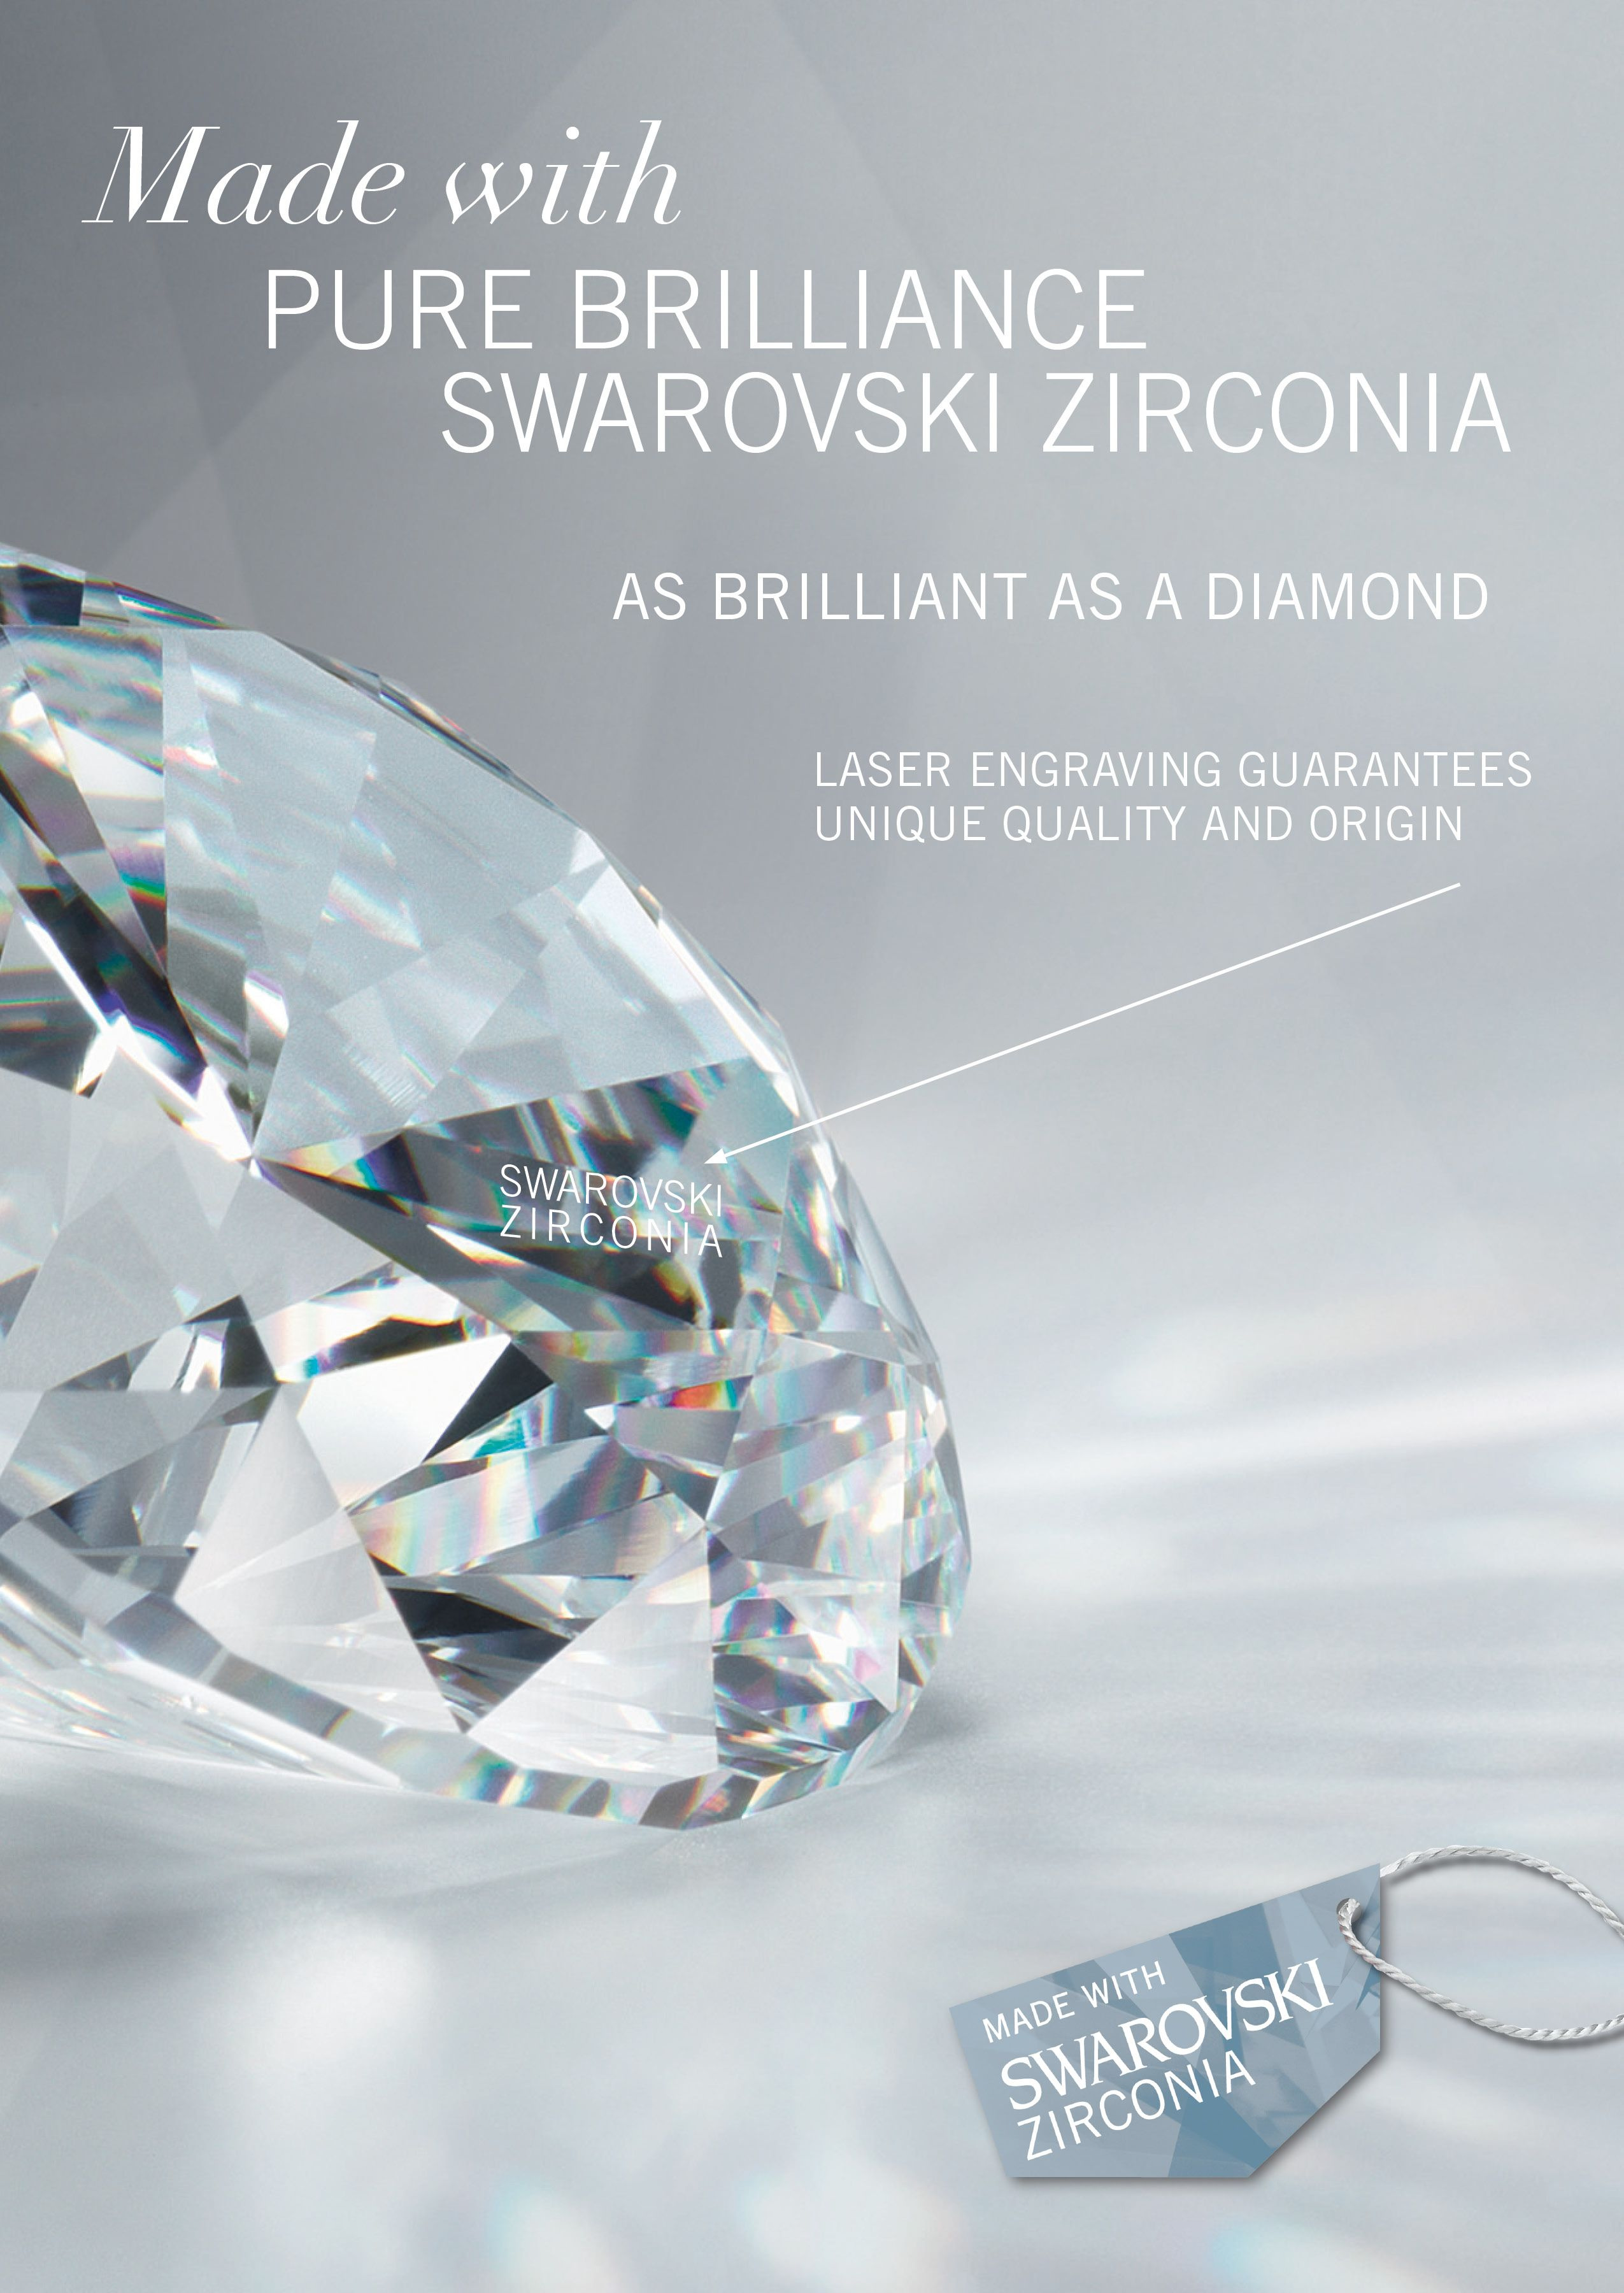 Swarovski crystals - the luxury of brilliance and pure beauty